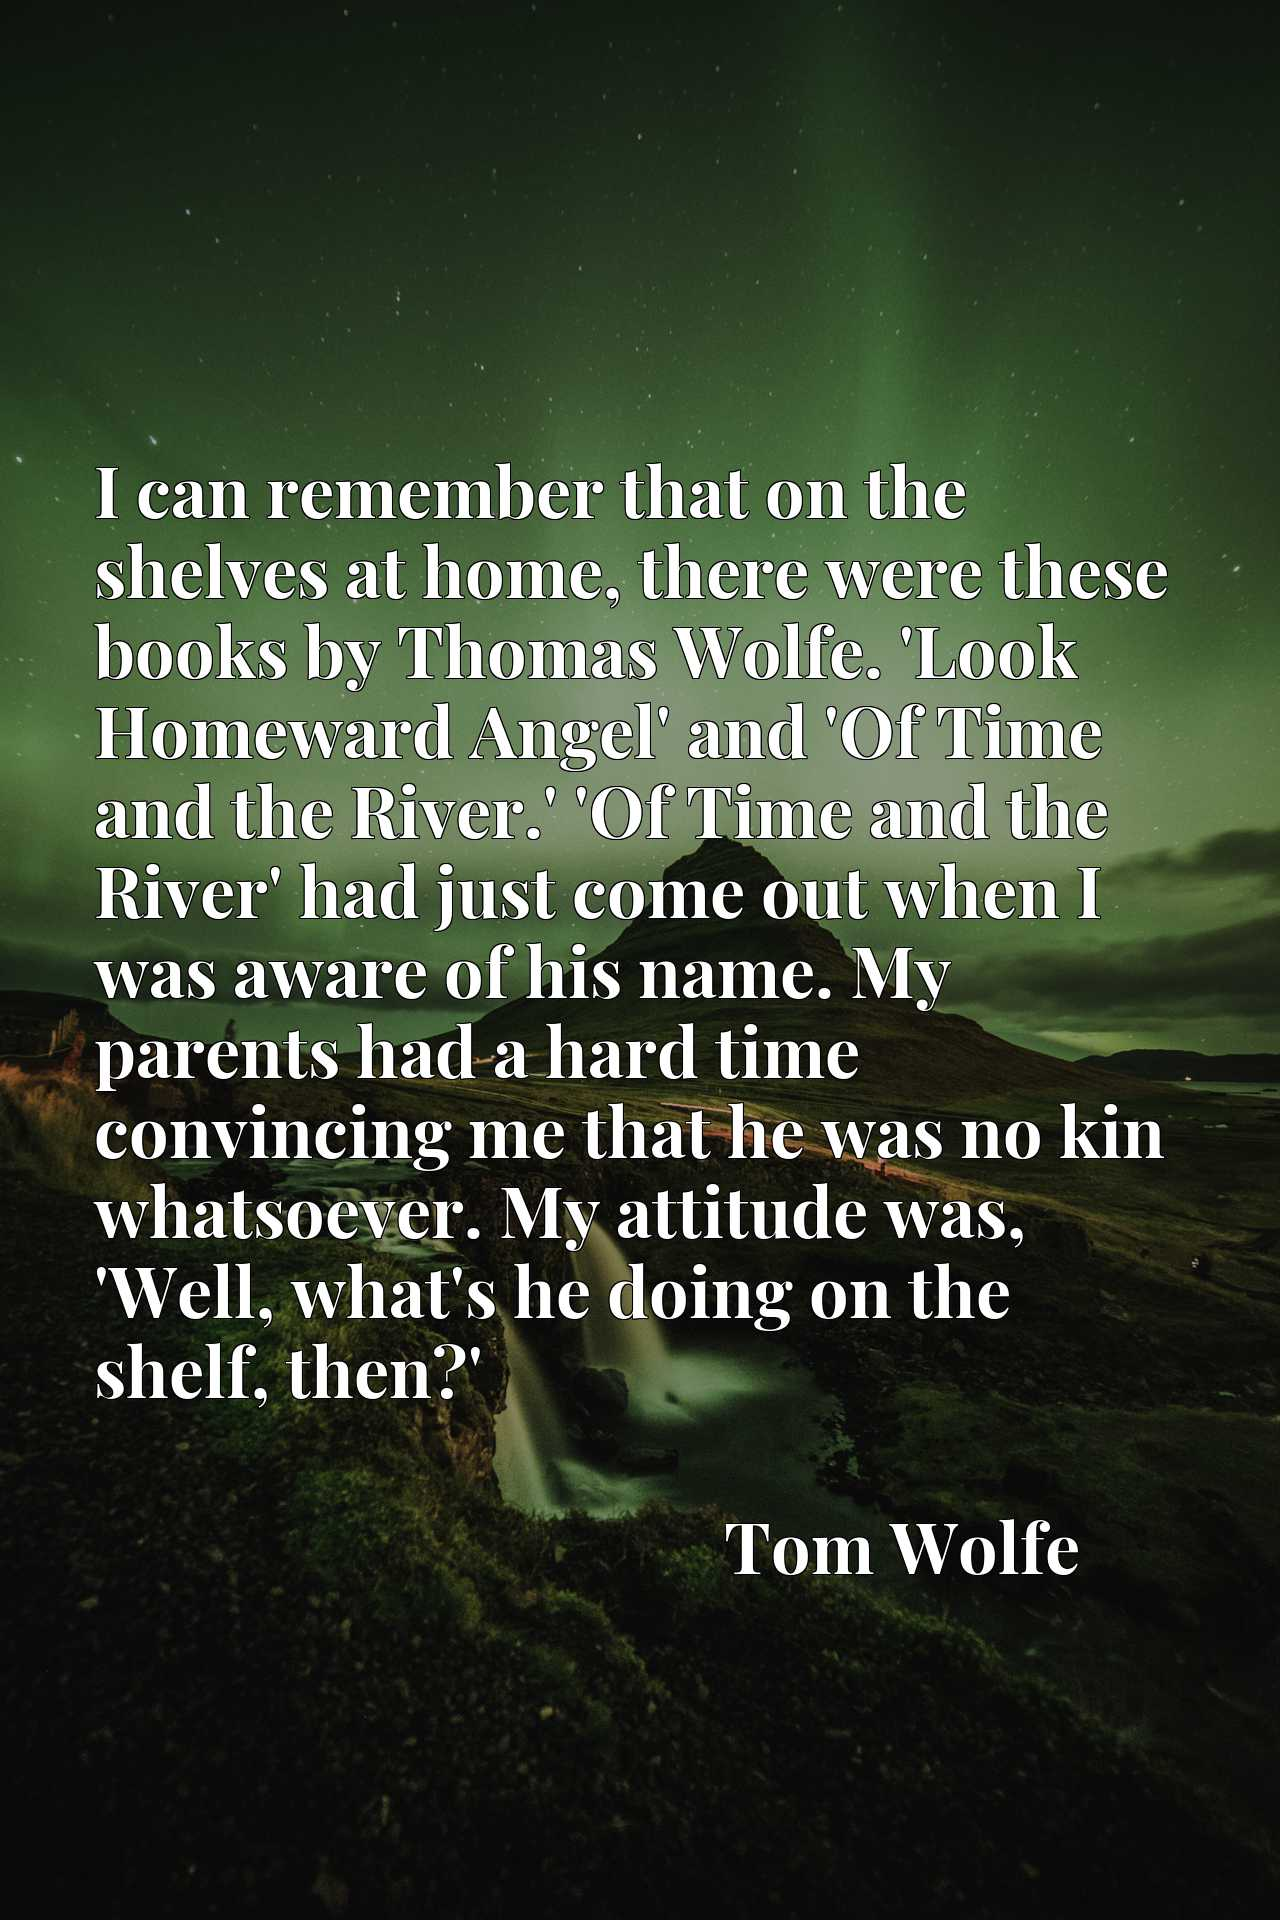 I can remember that on the shelves at home, there were these books by Thomas Wolfe. 'Look Homeward Angel' and 'Of Time and the River.' 'Of Time and the River' had just come out when I was aware of his name. My parents had a hard time convincing me that he was no kin whatsoever. My attitude was, 'Well, what's he doing on the shelf, then?'